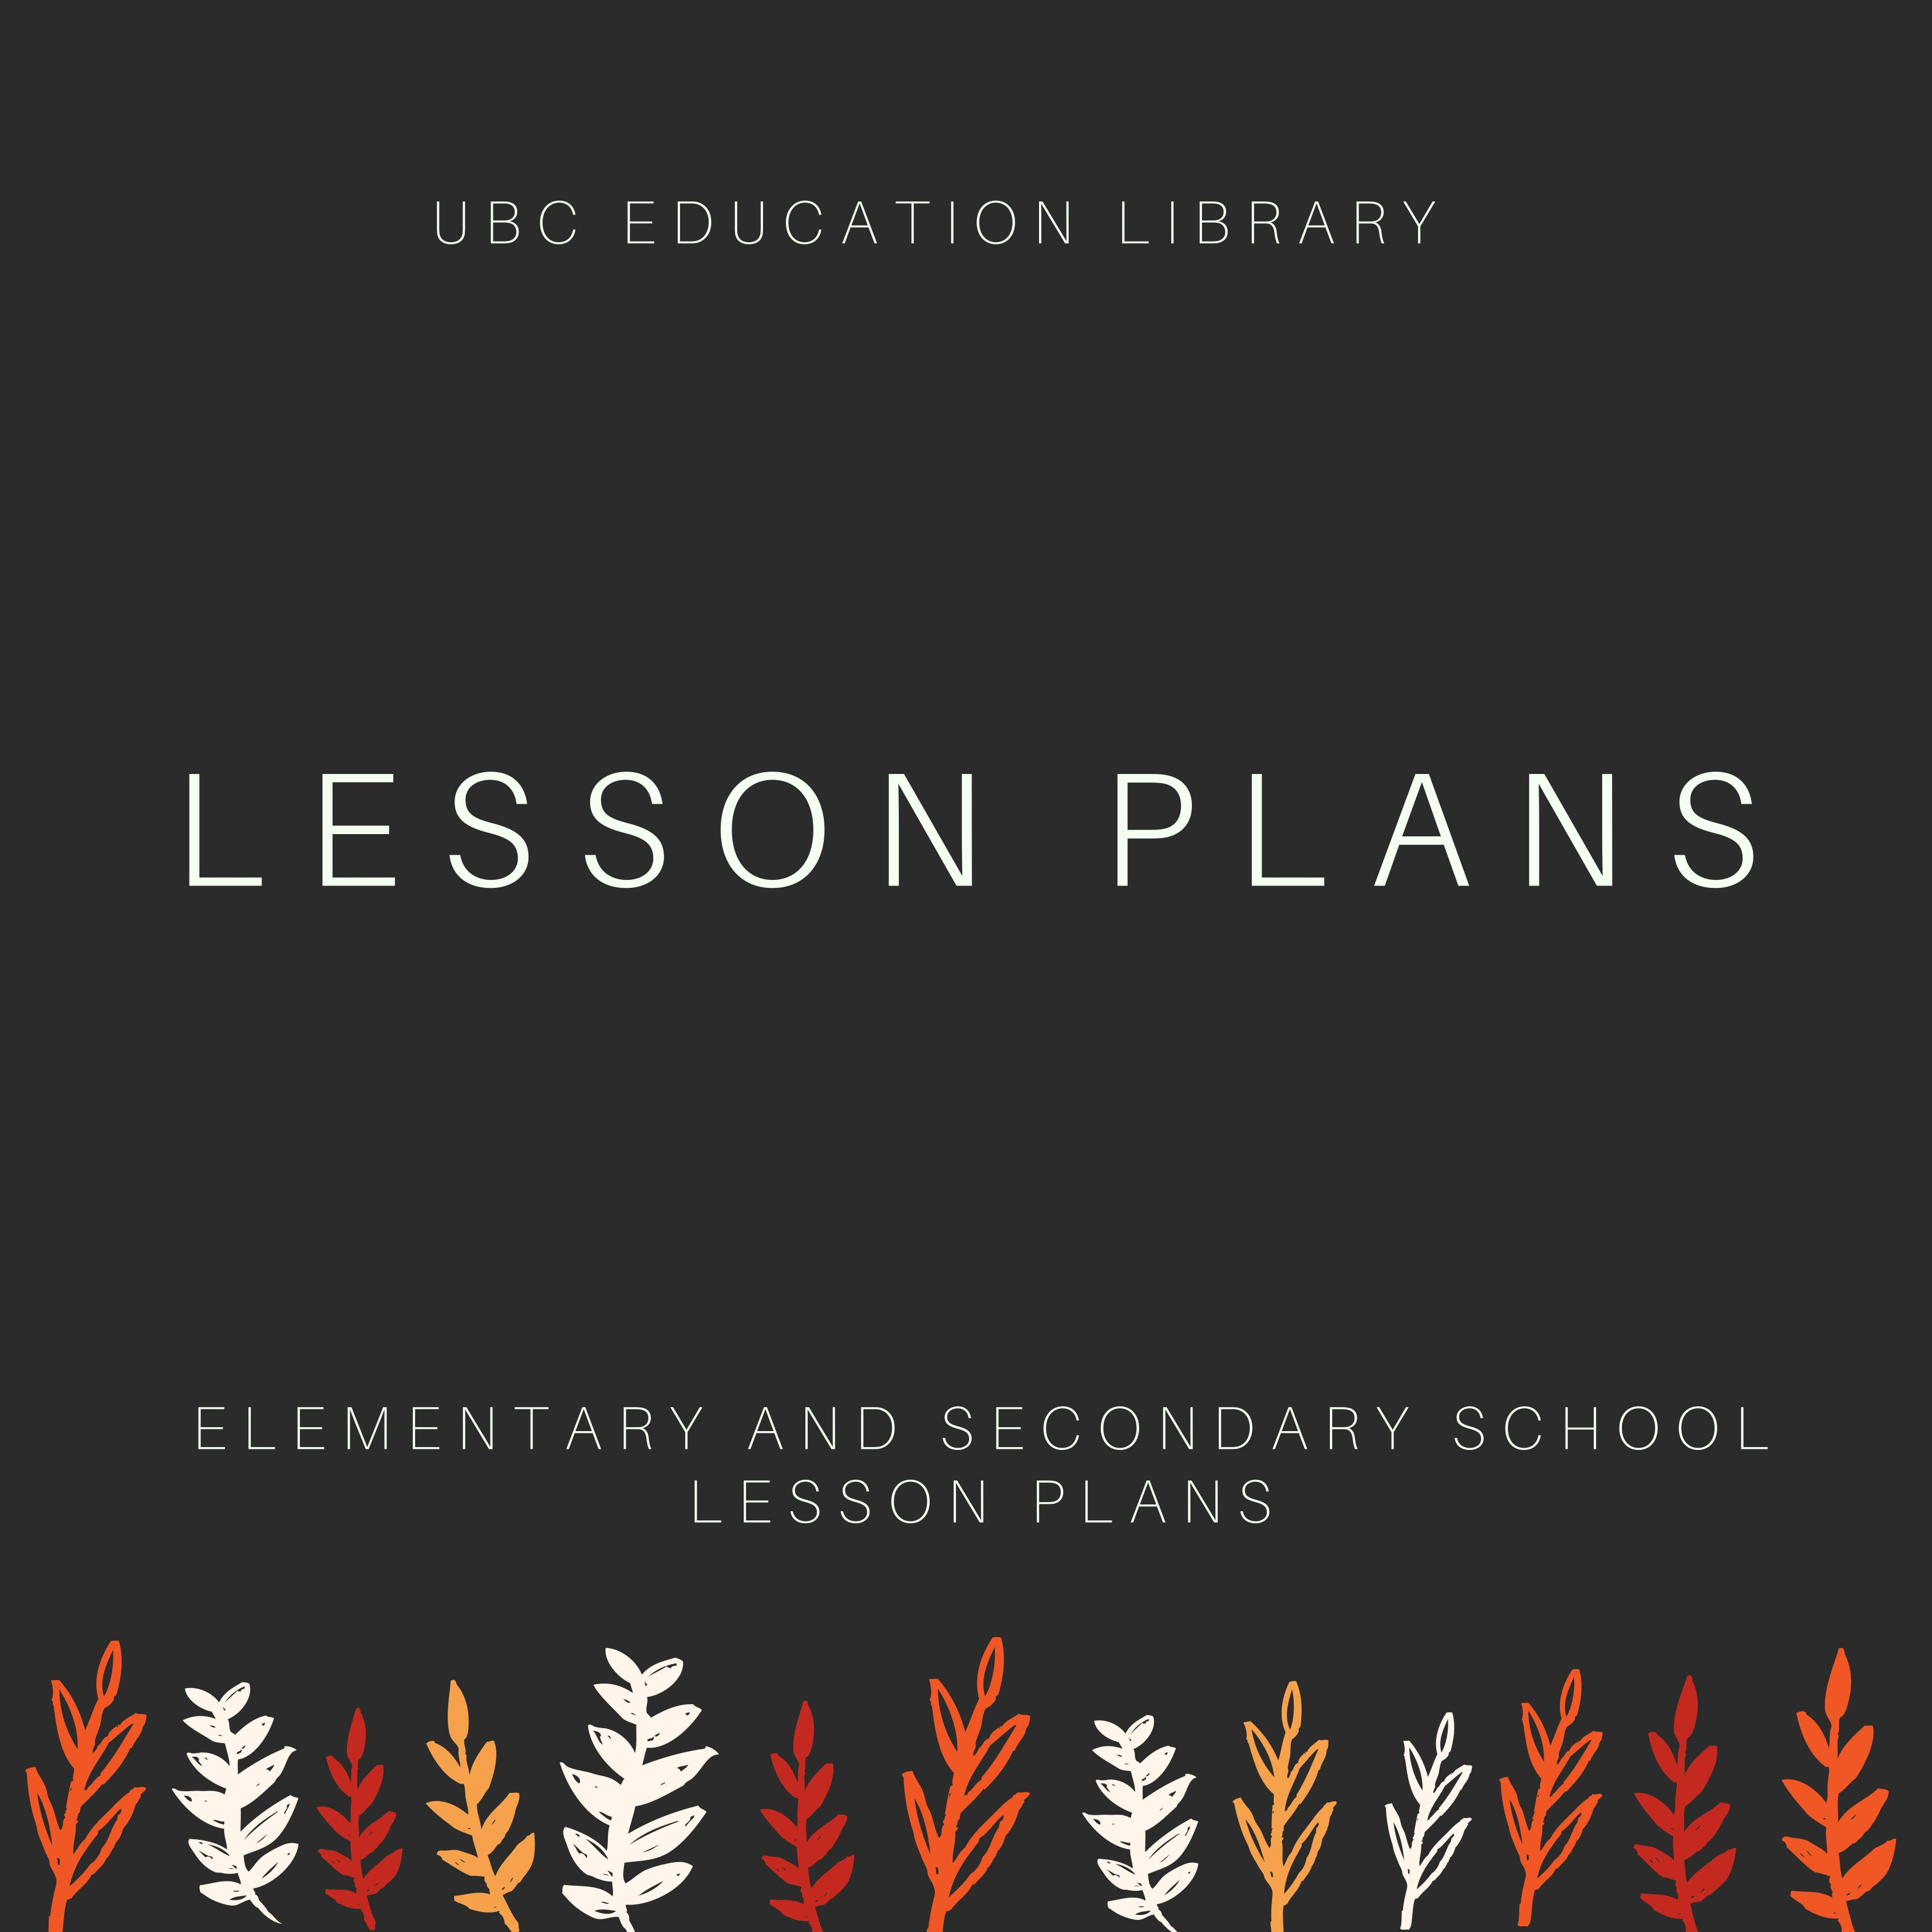 Designing Learning Resources To Support Planning Learning Experiences